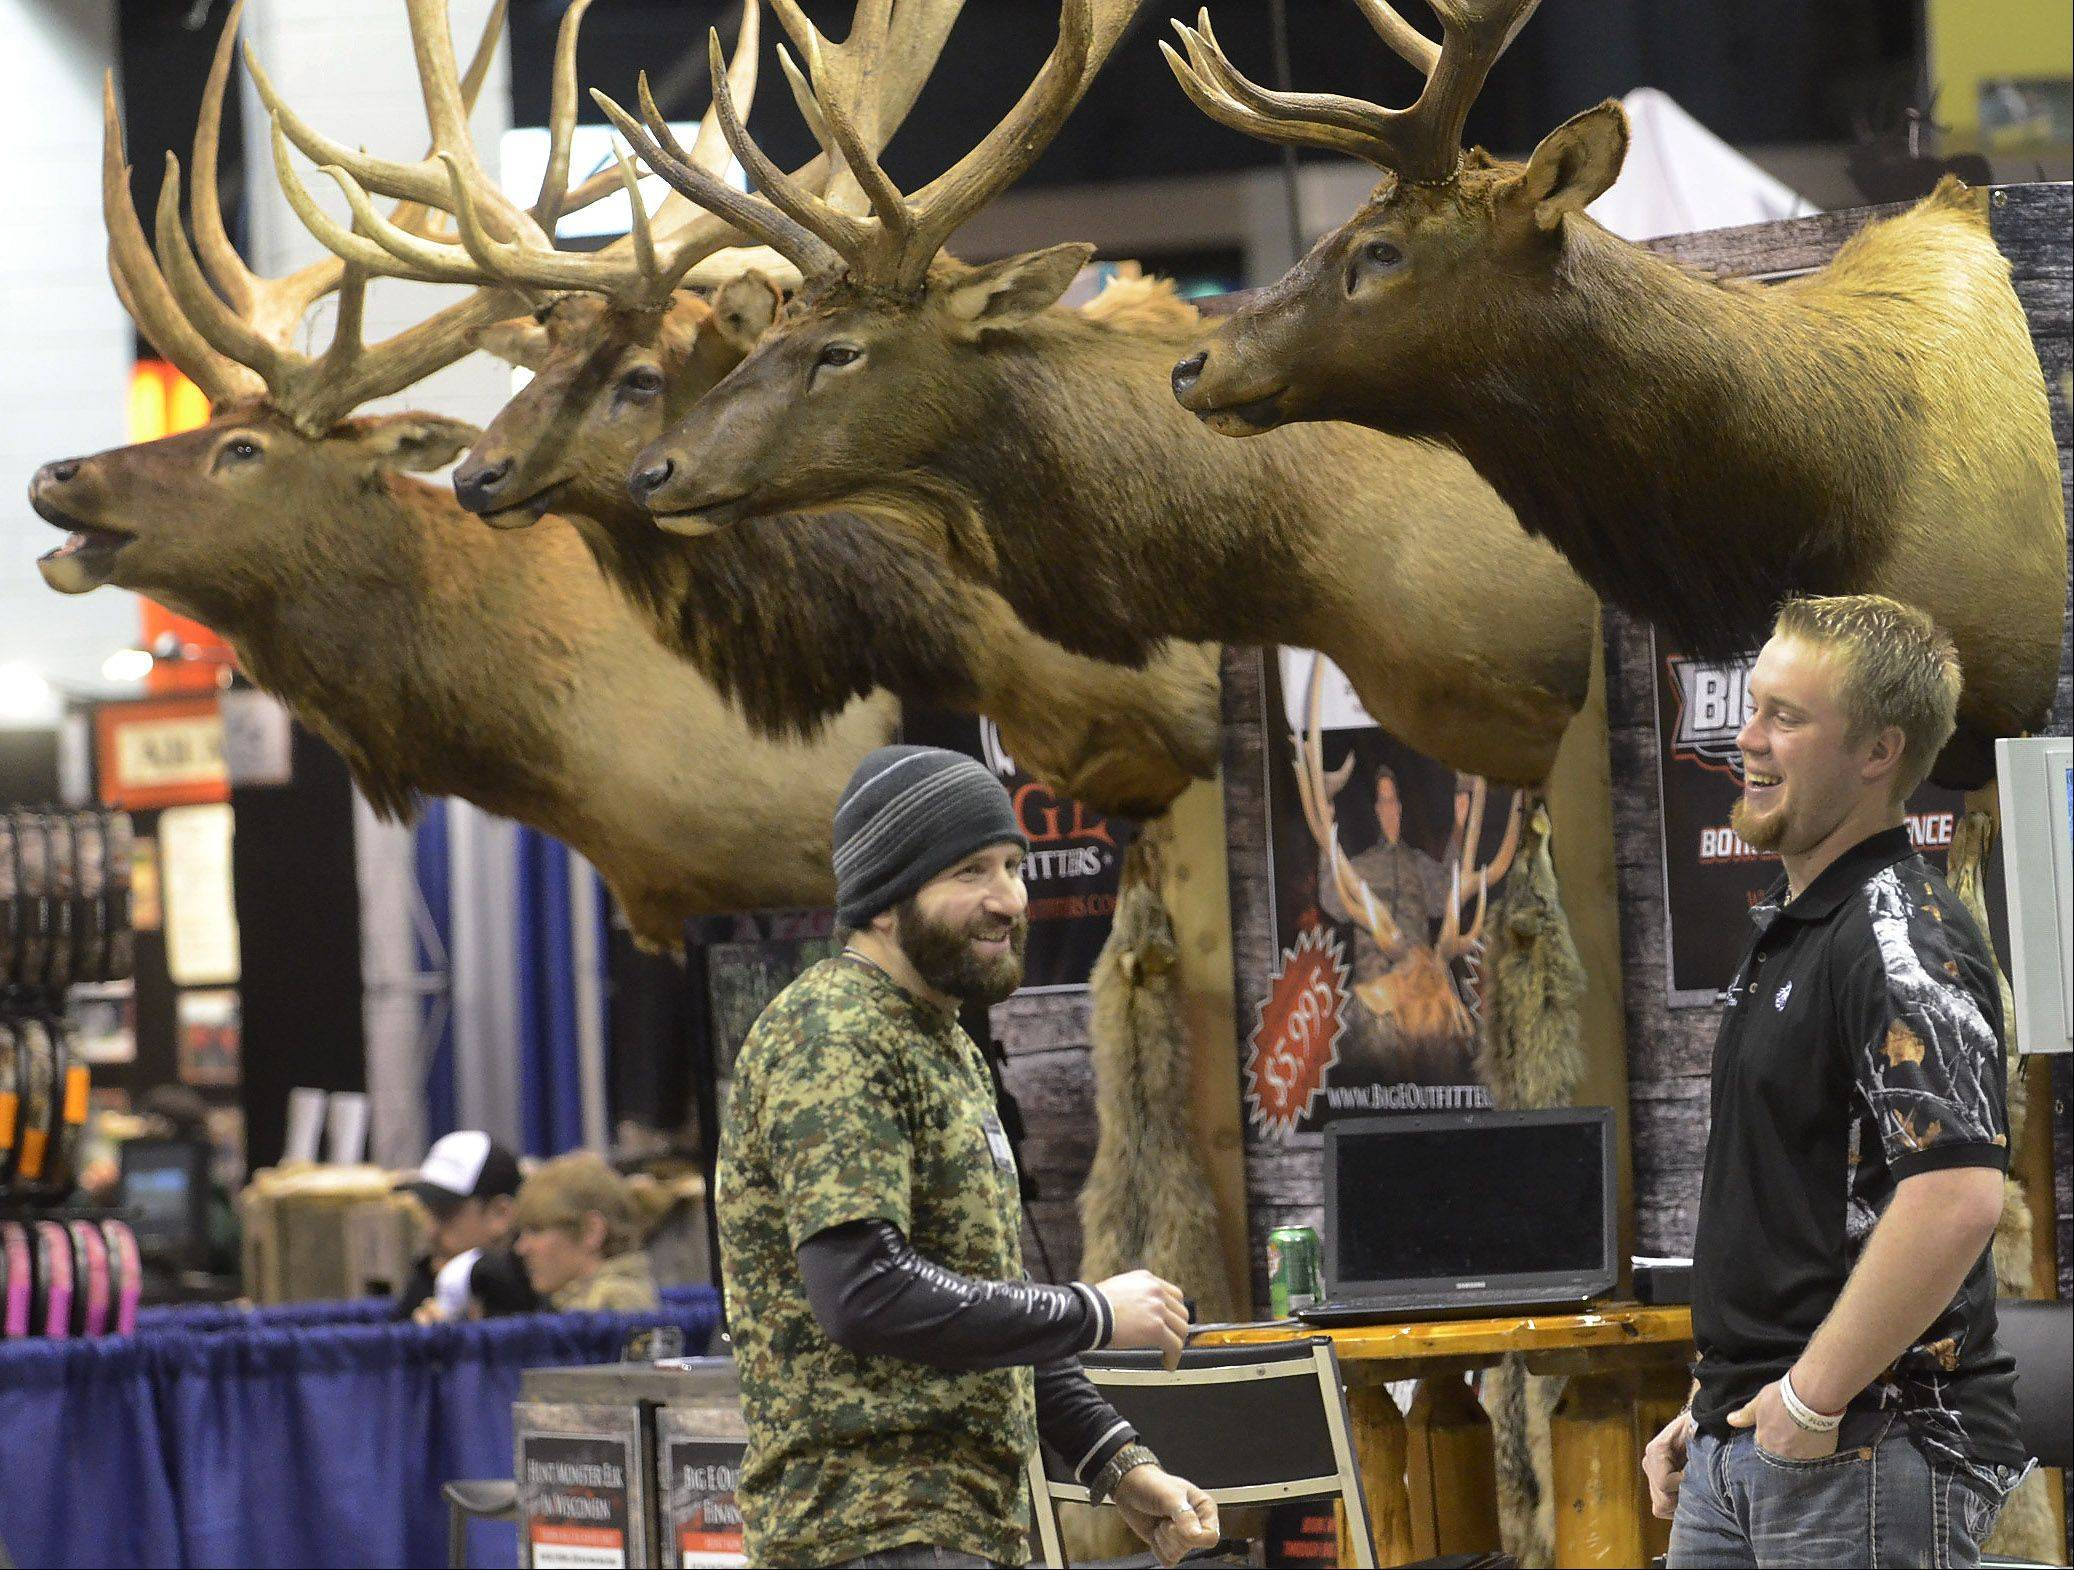 Kevin Finizio of Addison, left, talks with Brandon Eger of Big E Outfitters on Friday at the 28th Annual Chicago Outdoor Sports Show at the Donald E. Stephens Convention Center in Rosemont.